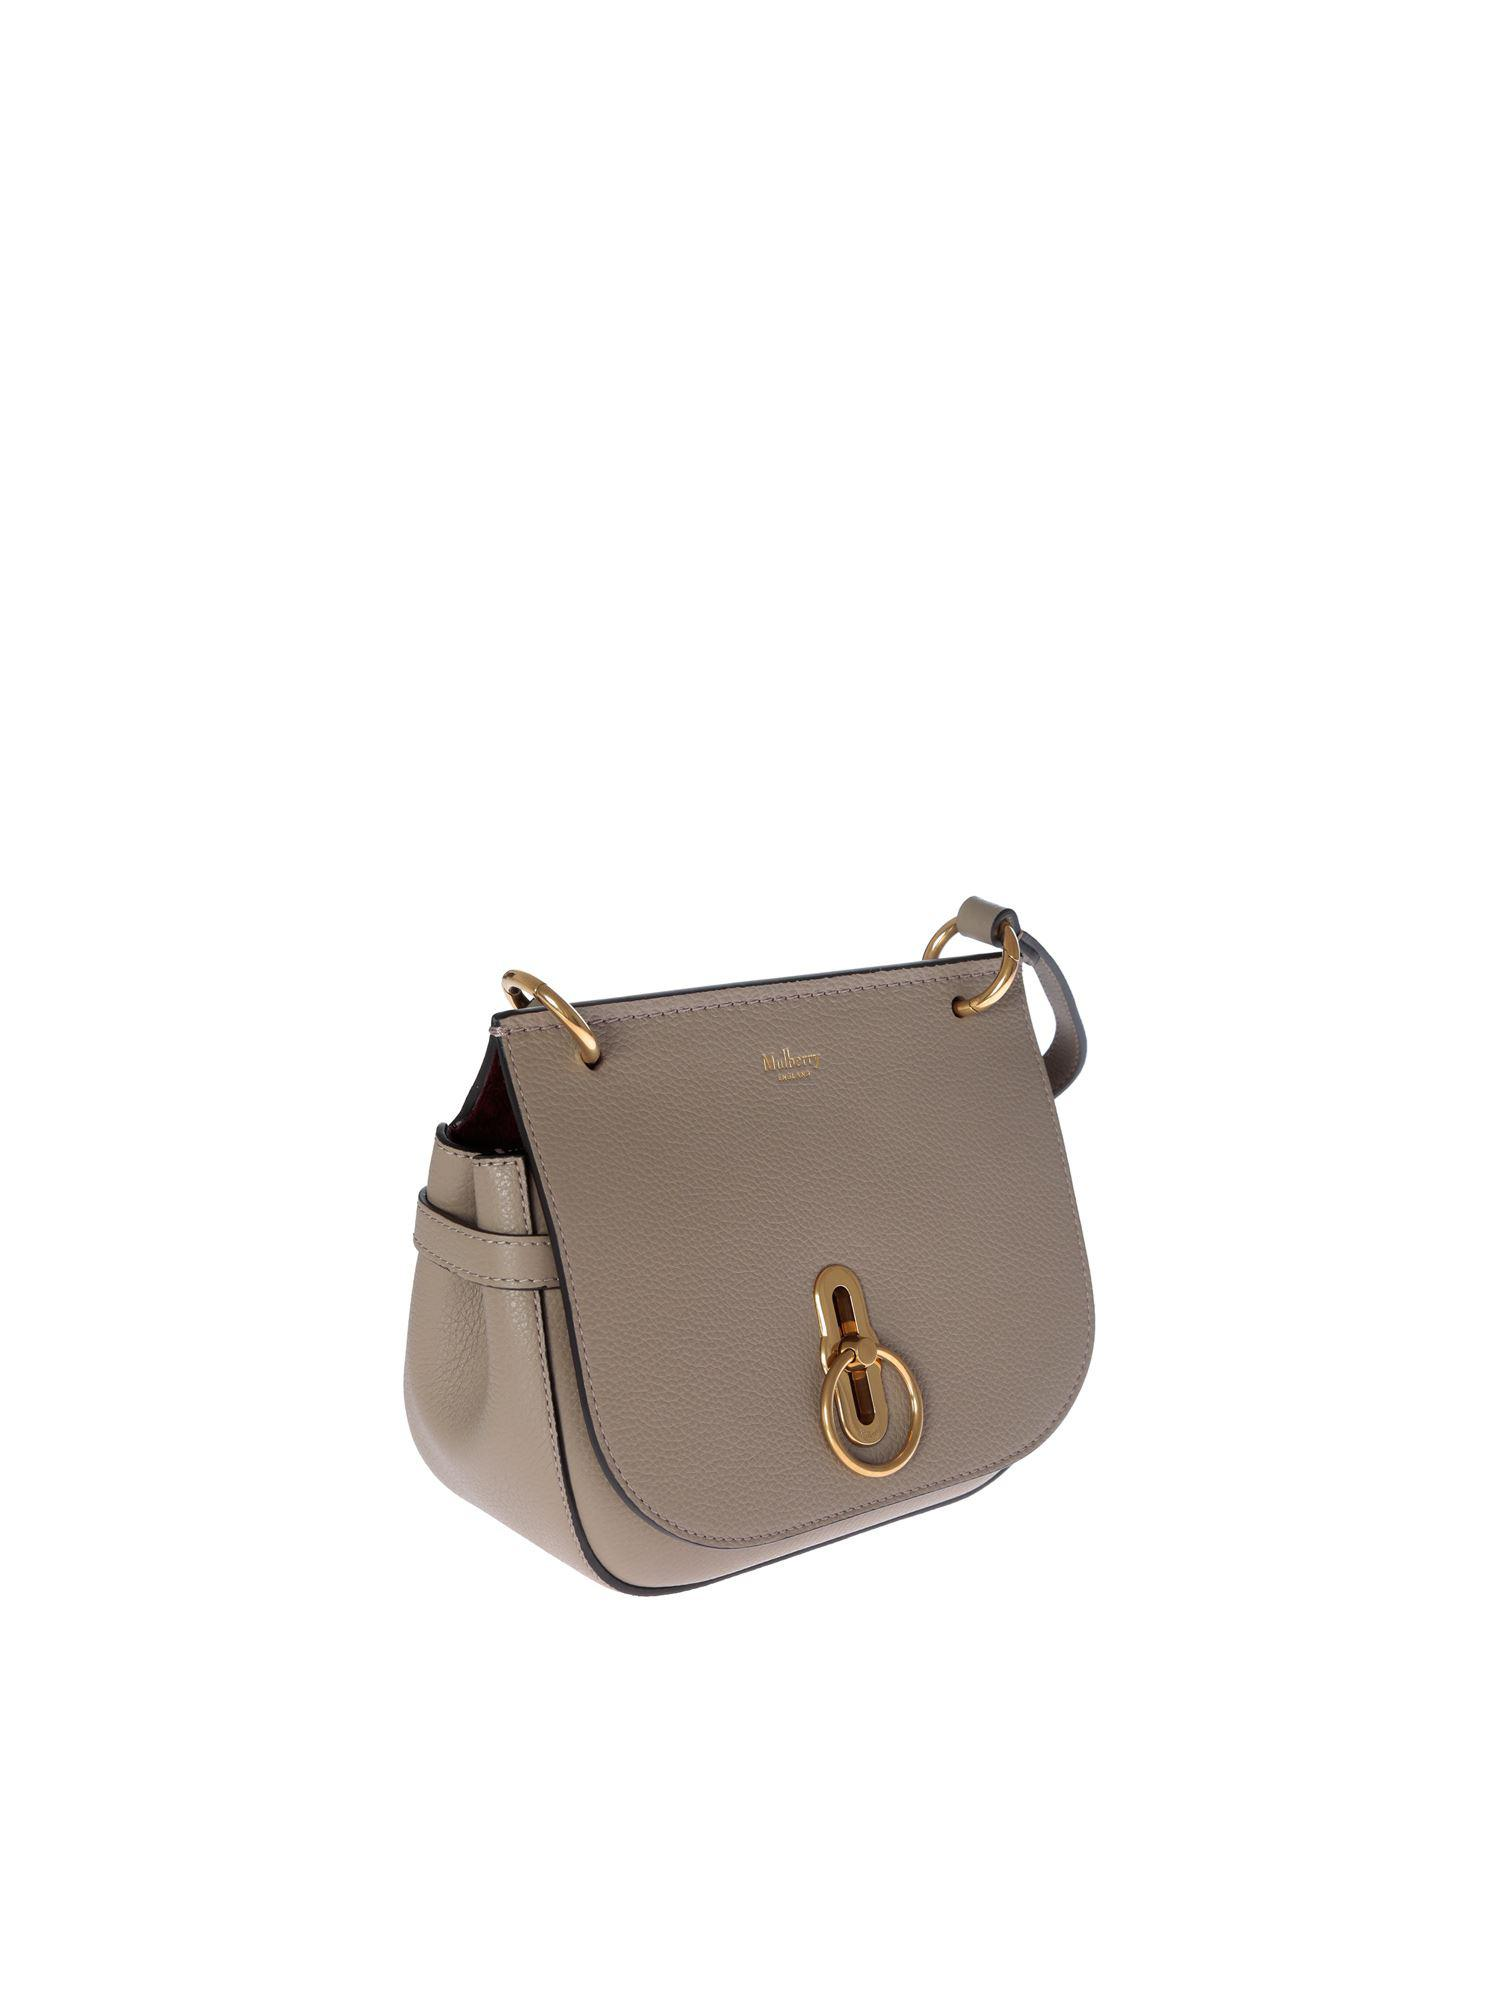 c7e2b568f0 Lyst - Mulberry Small Amberley Satchel Bag In Dove Grey Leather in Gray